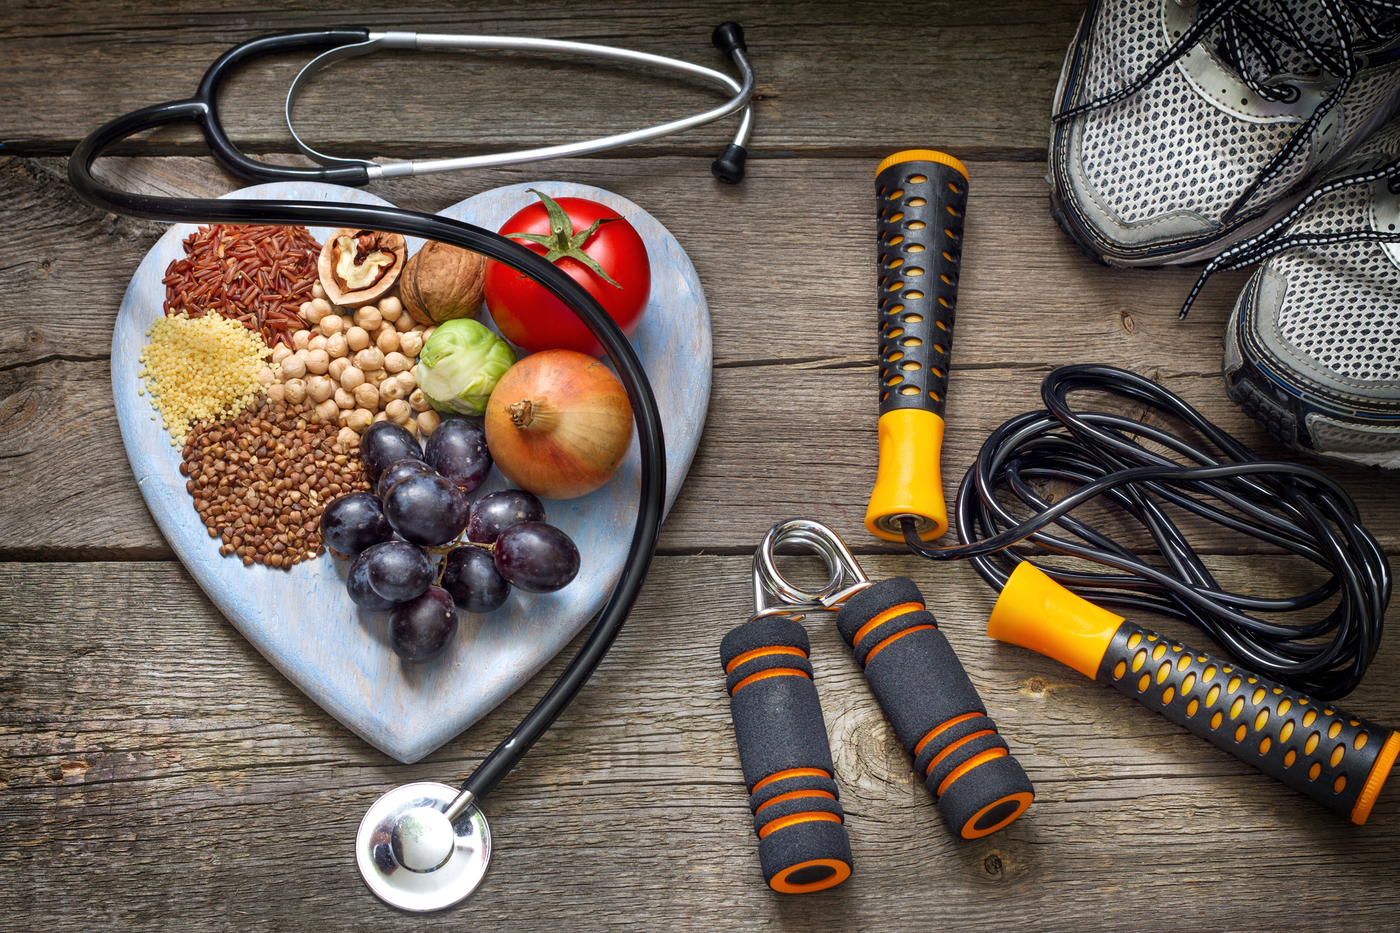 Healthy food, stethoscope, nutrition, weights, workout equipment